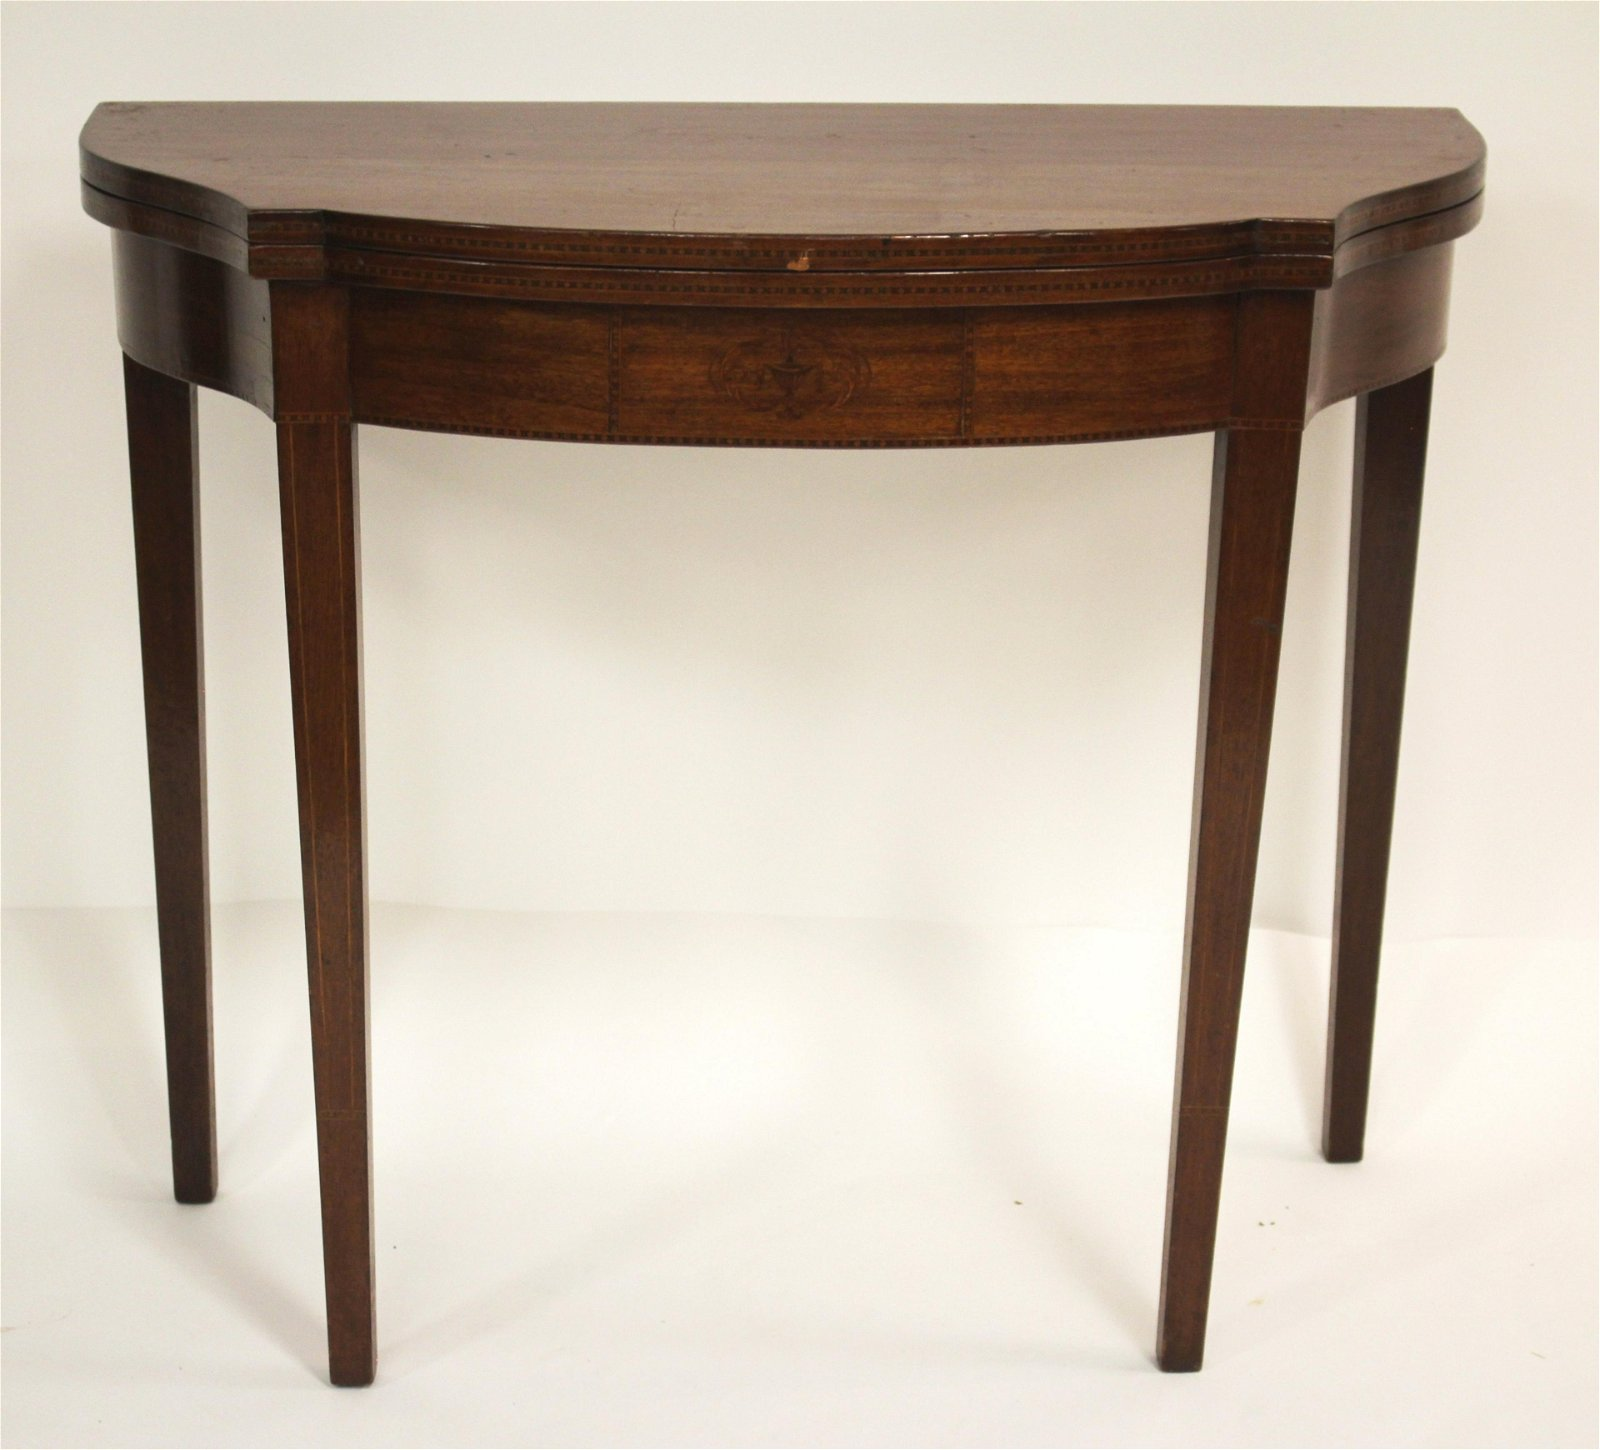 Federal Style Inlaid Lift Top Table, 19th C.